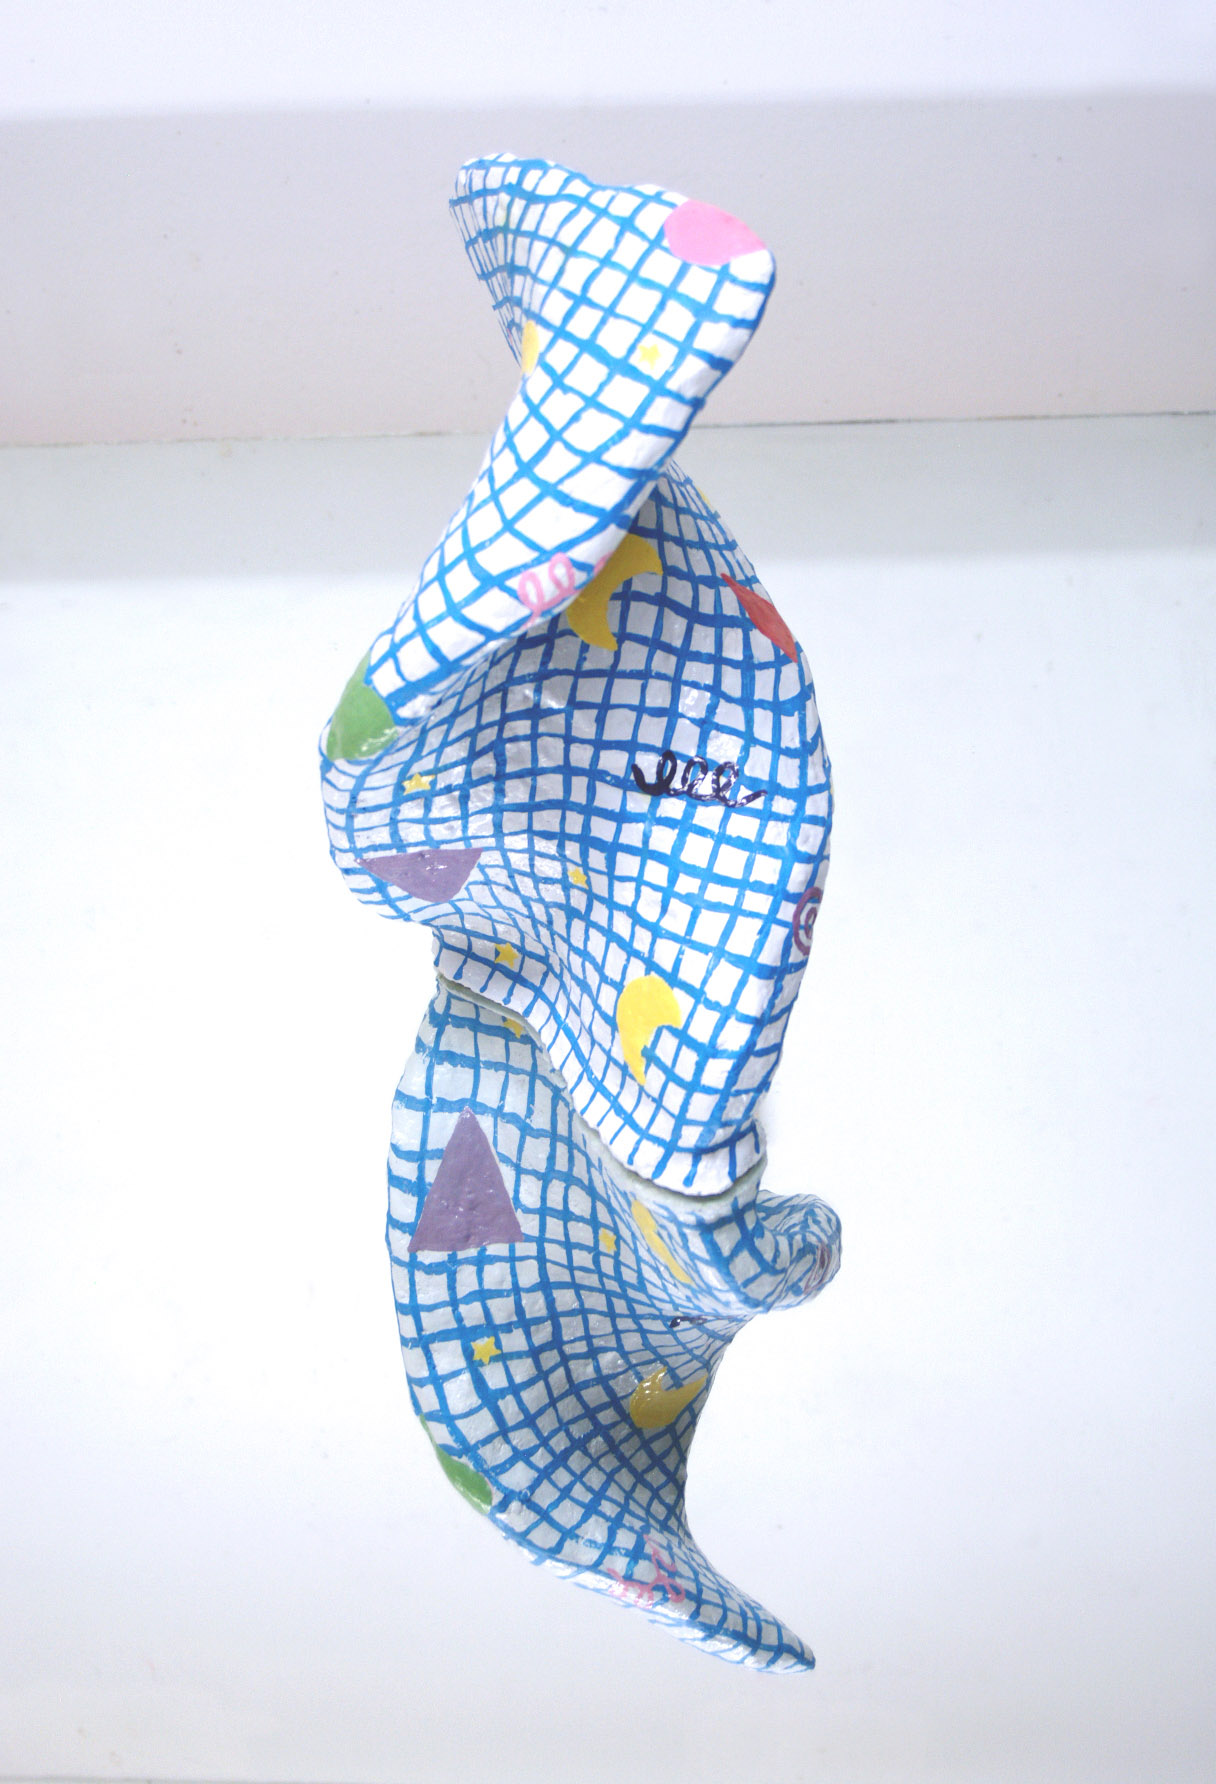 a white curled hydrocal sculpture with a blue grid and simple colored shapes on a mirror